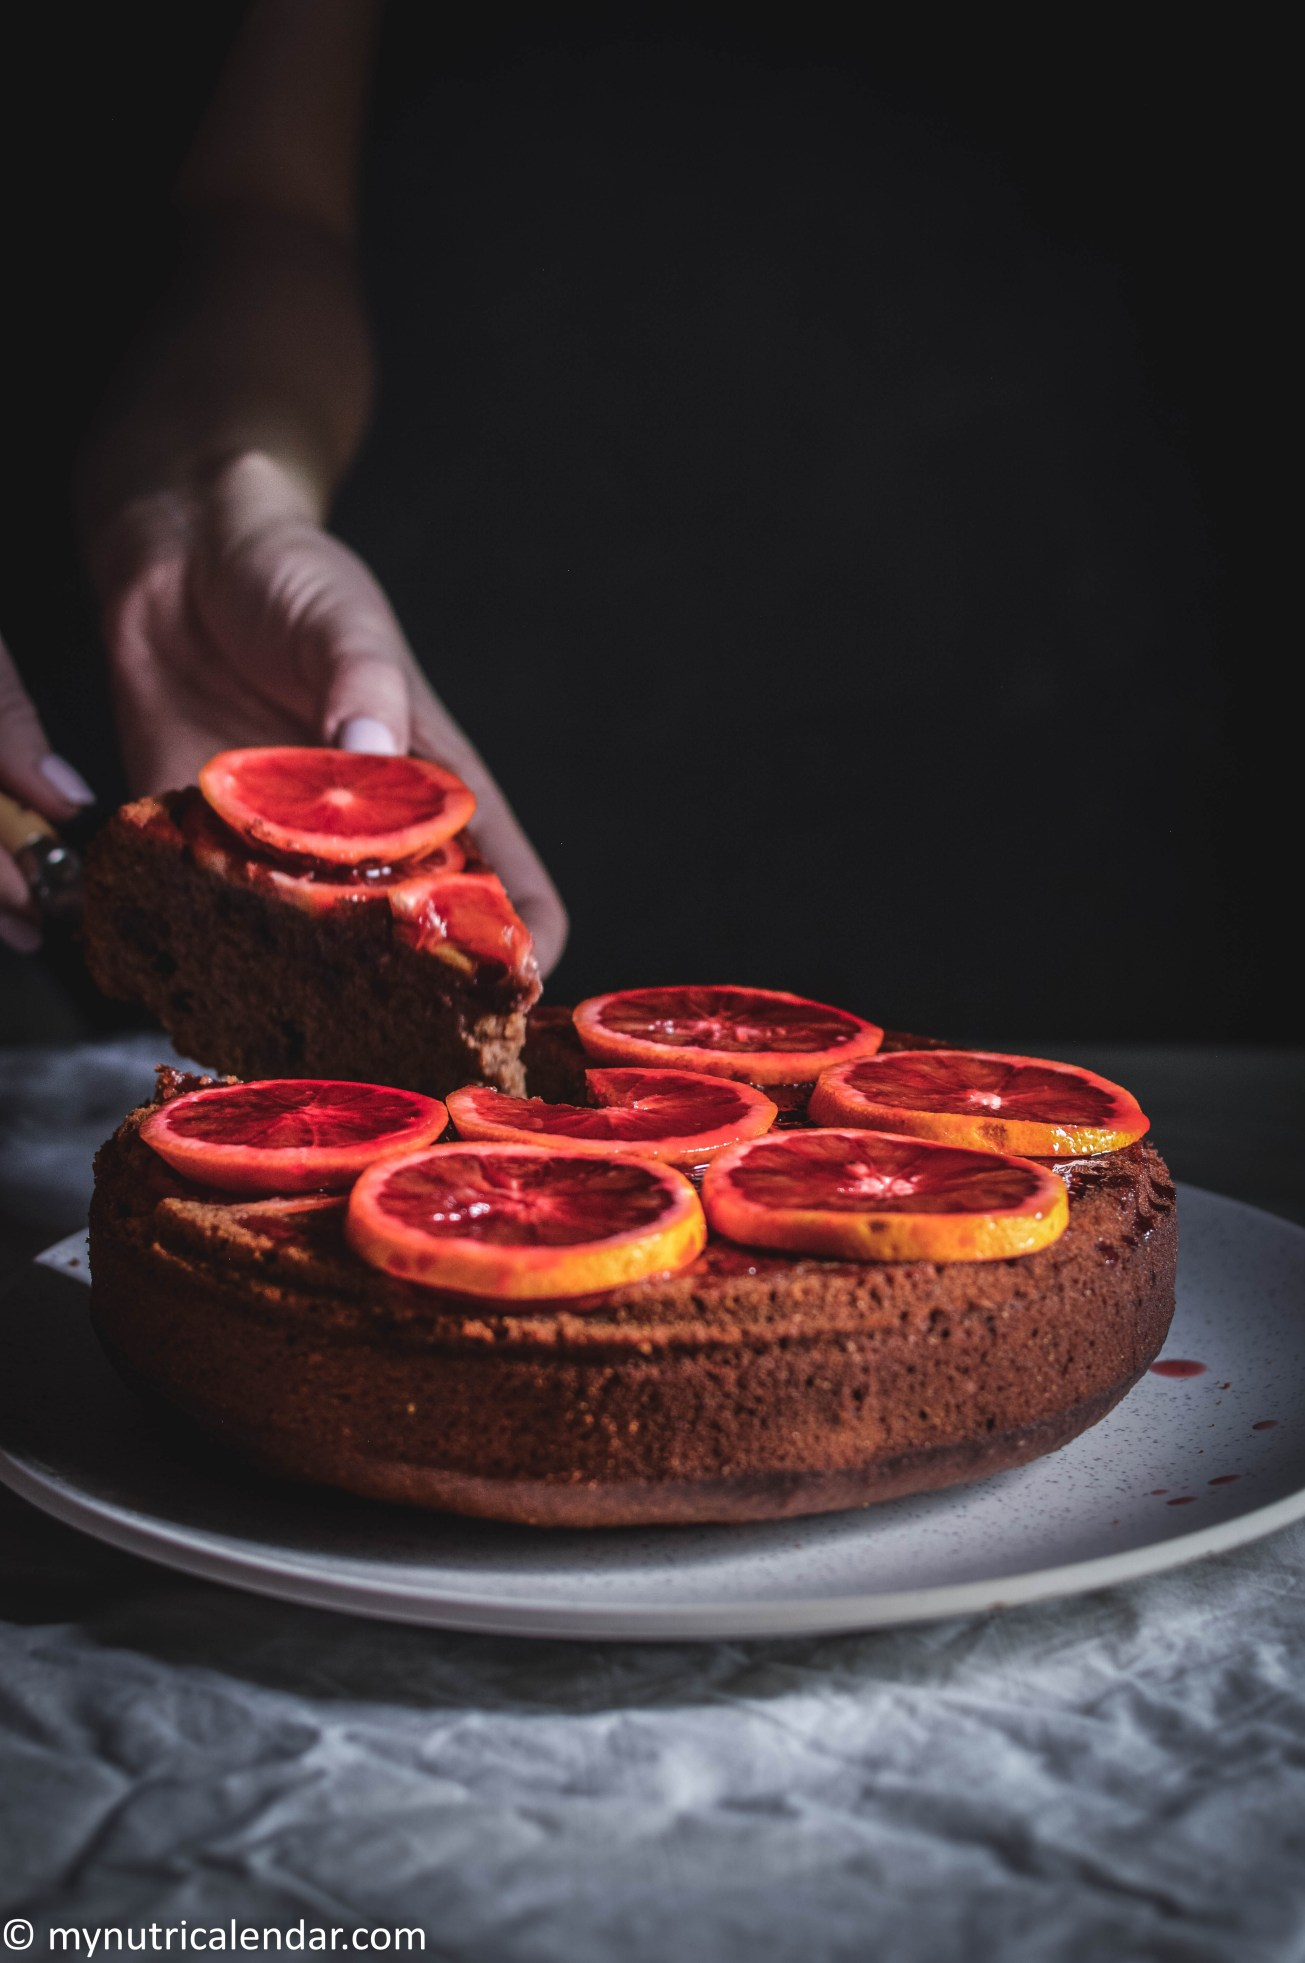 blood-orange-cake-chocolate-chips-raisins-no-sugar-4